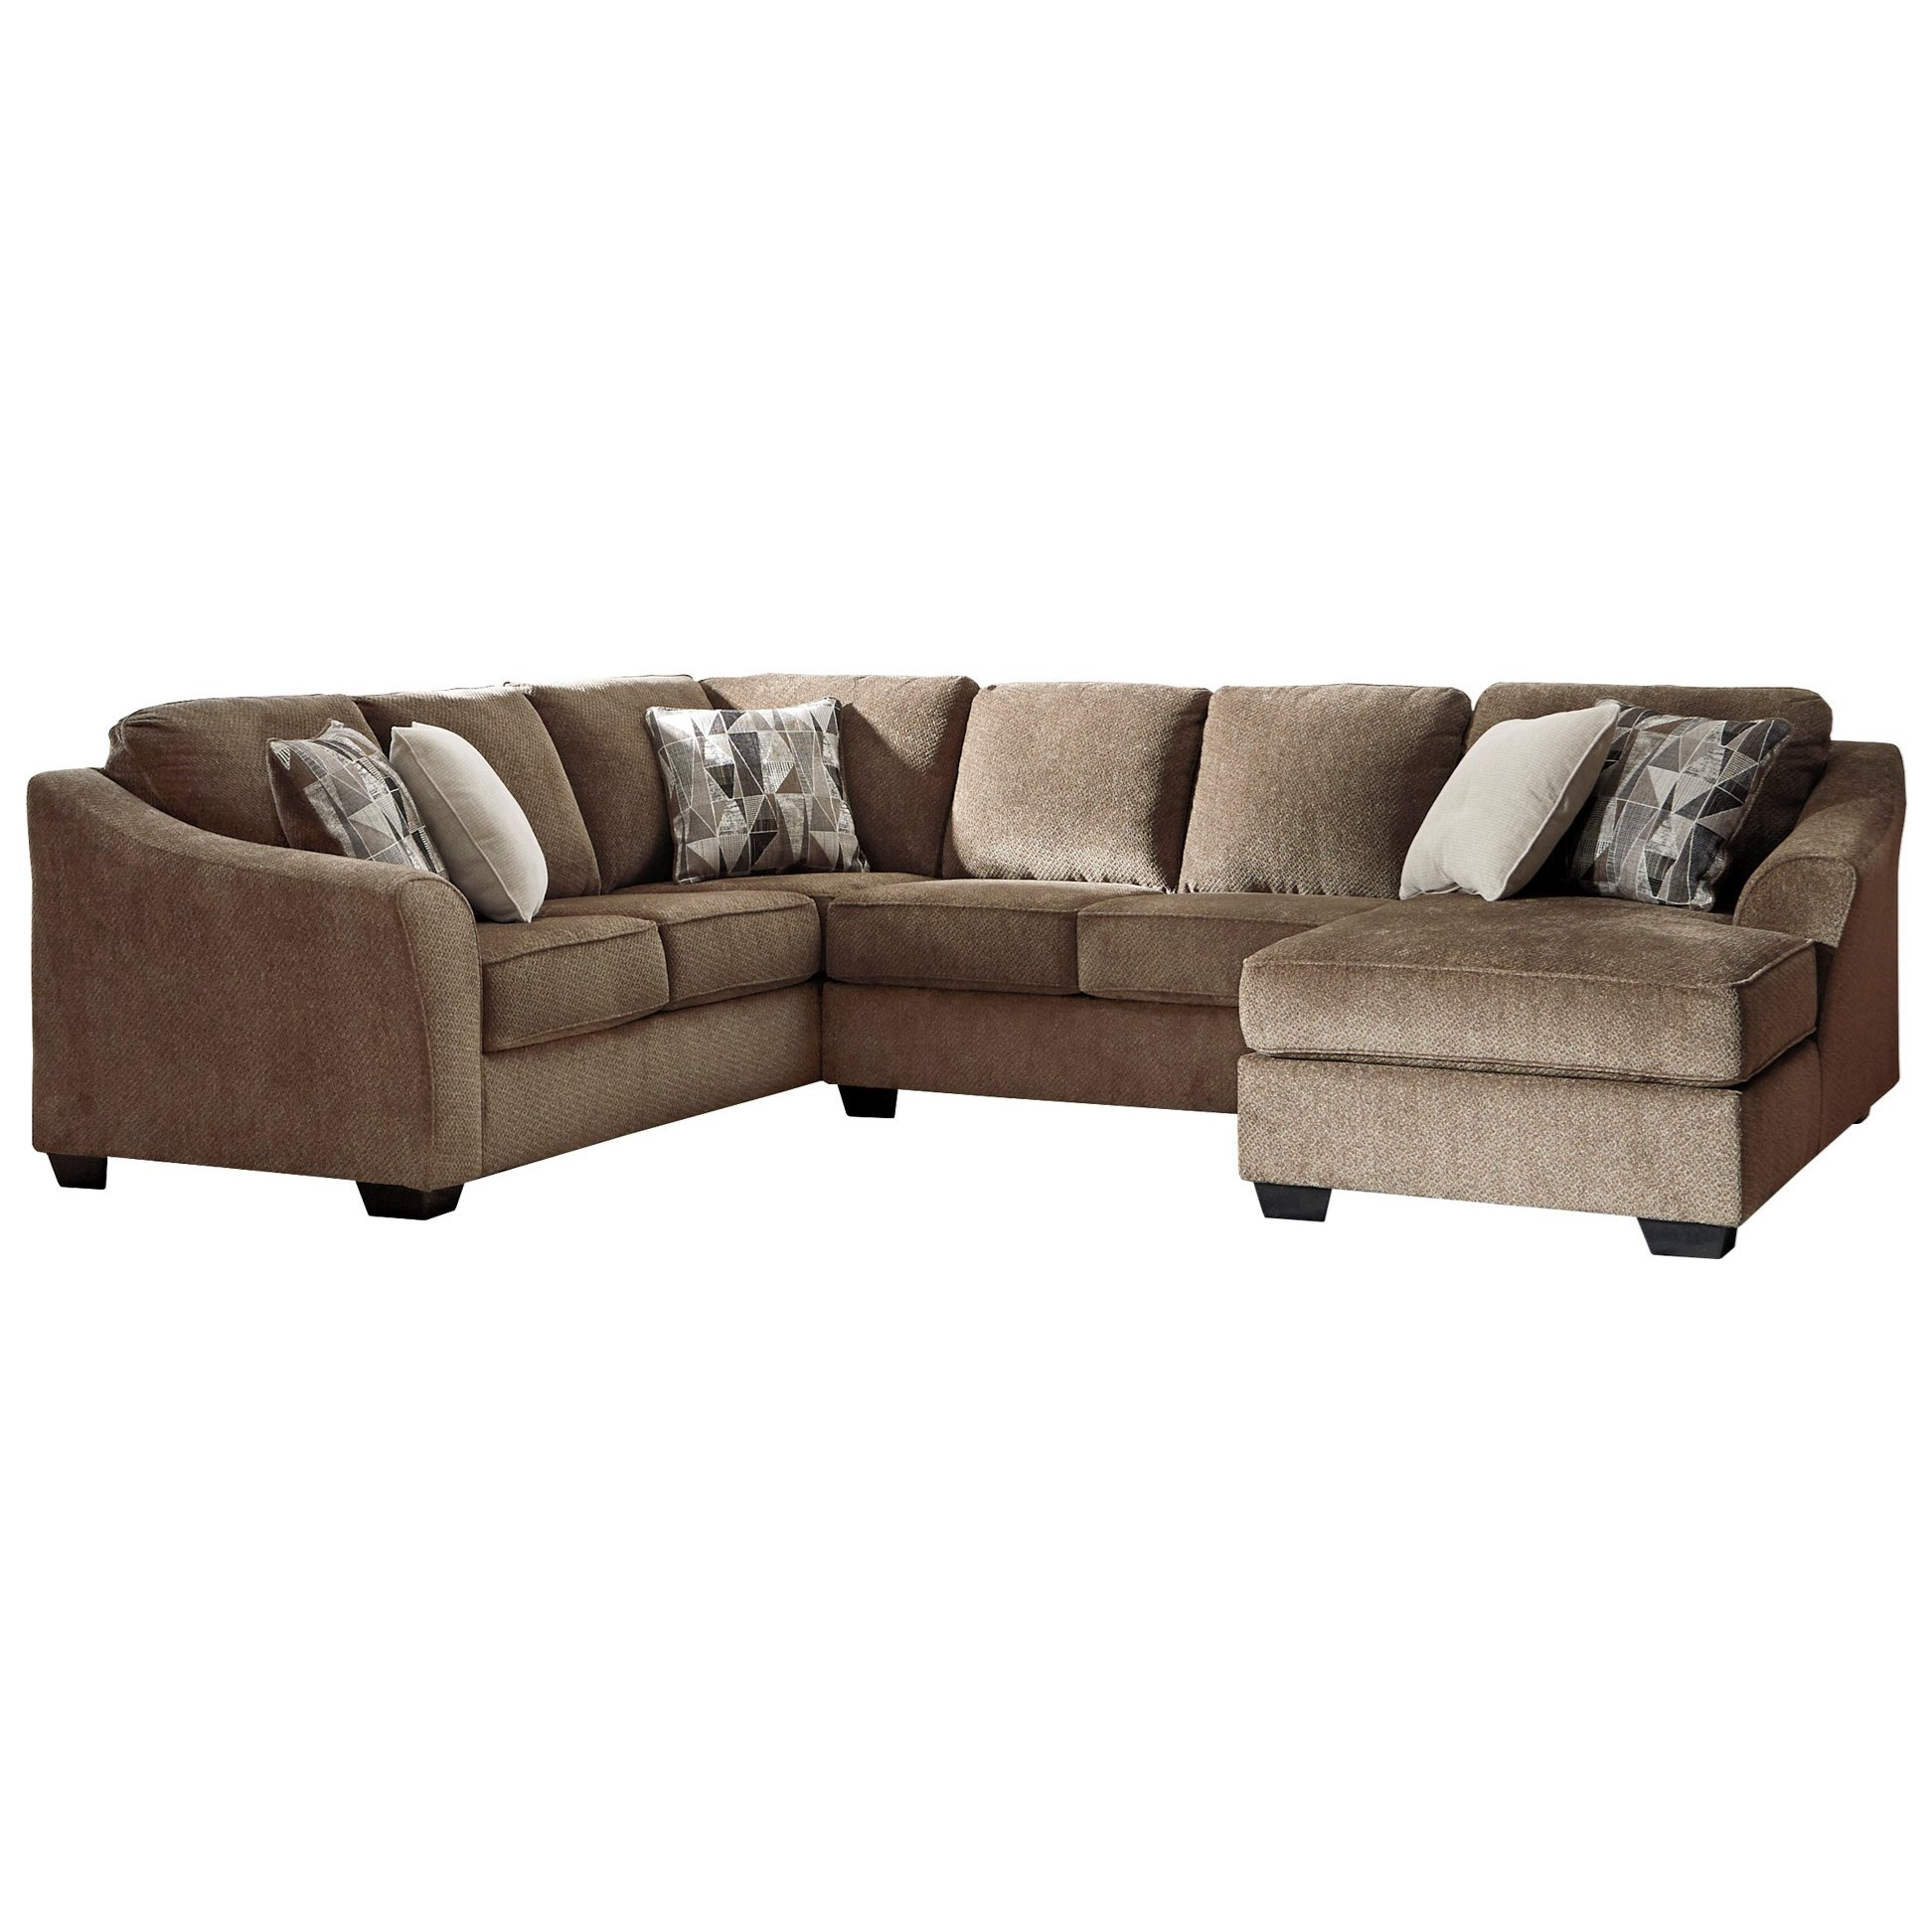 Graftin 3-Piece Sectional by Benchcraft at Miller Waldrop Furniture and Decor